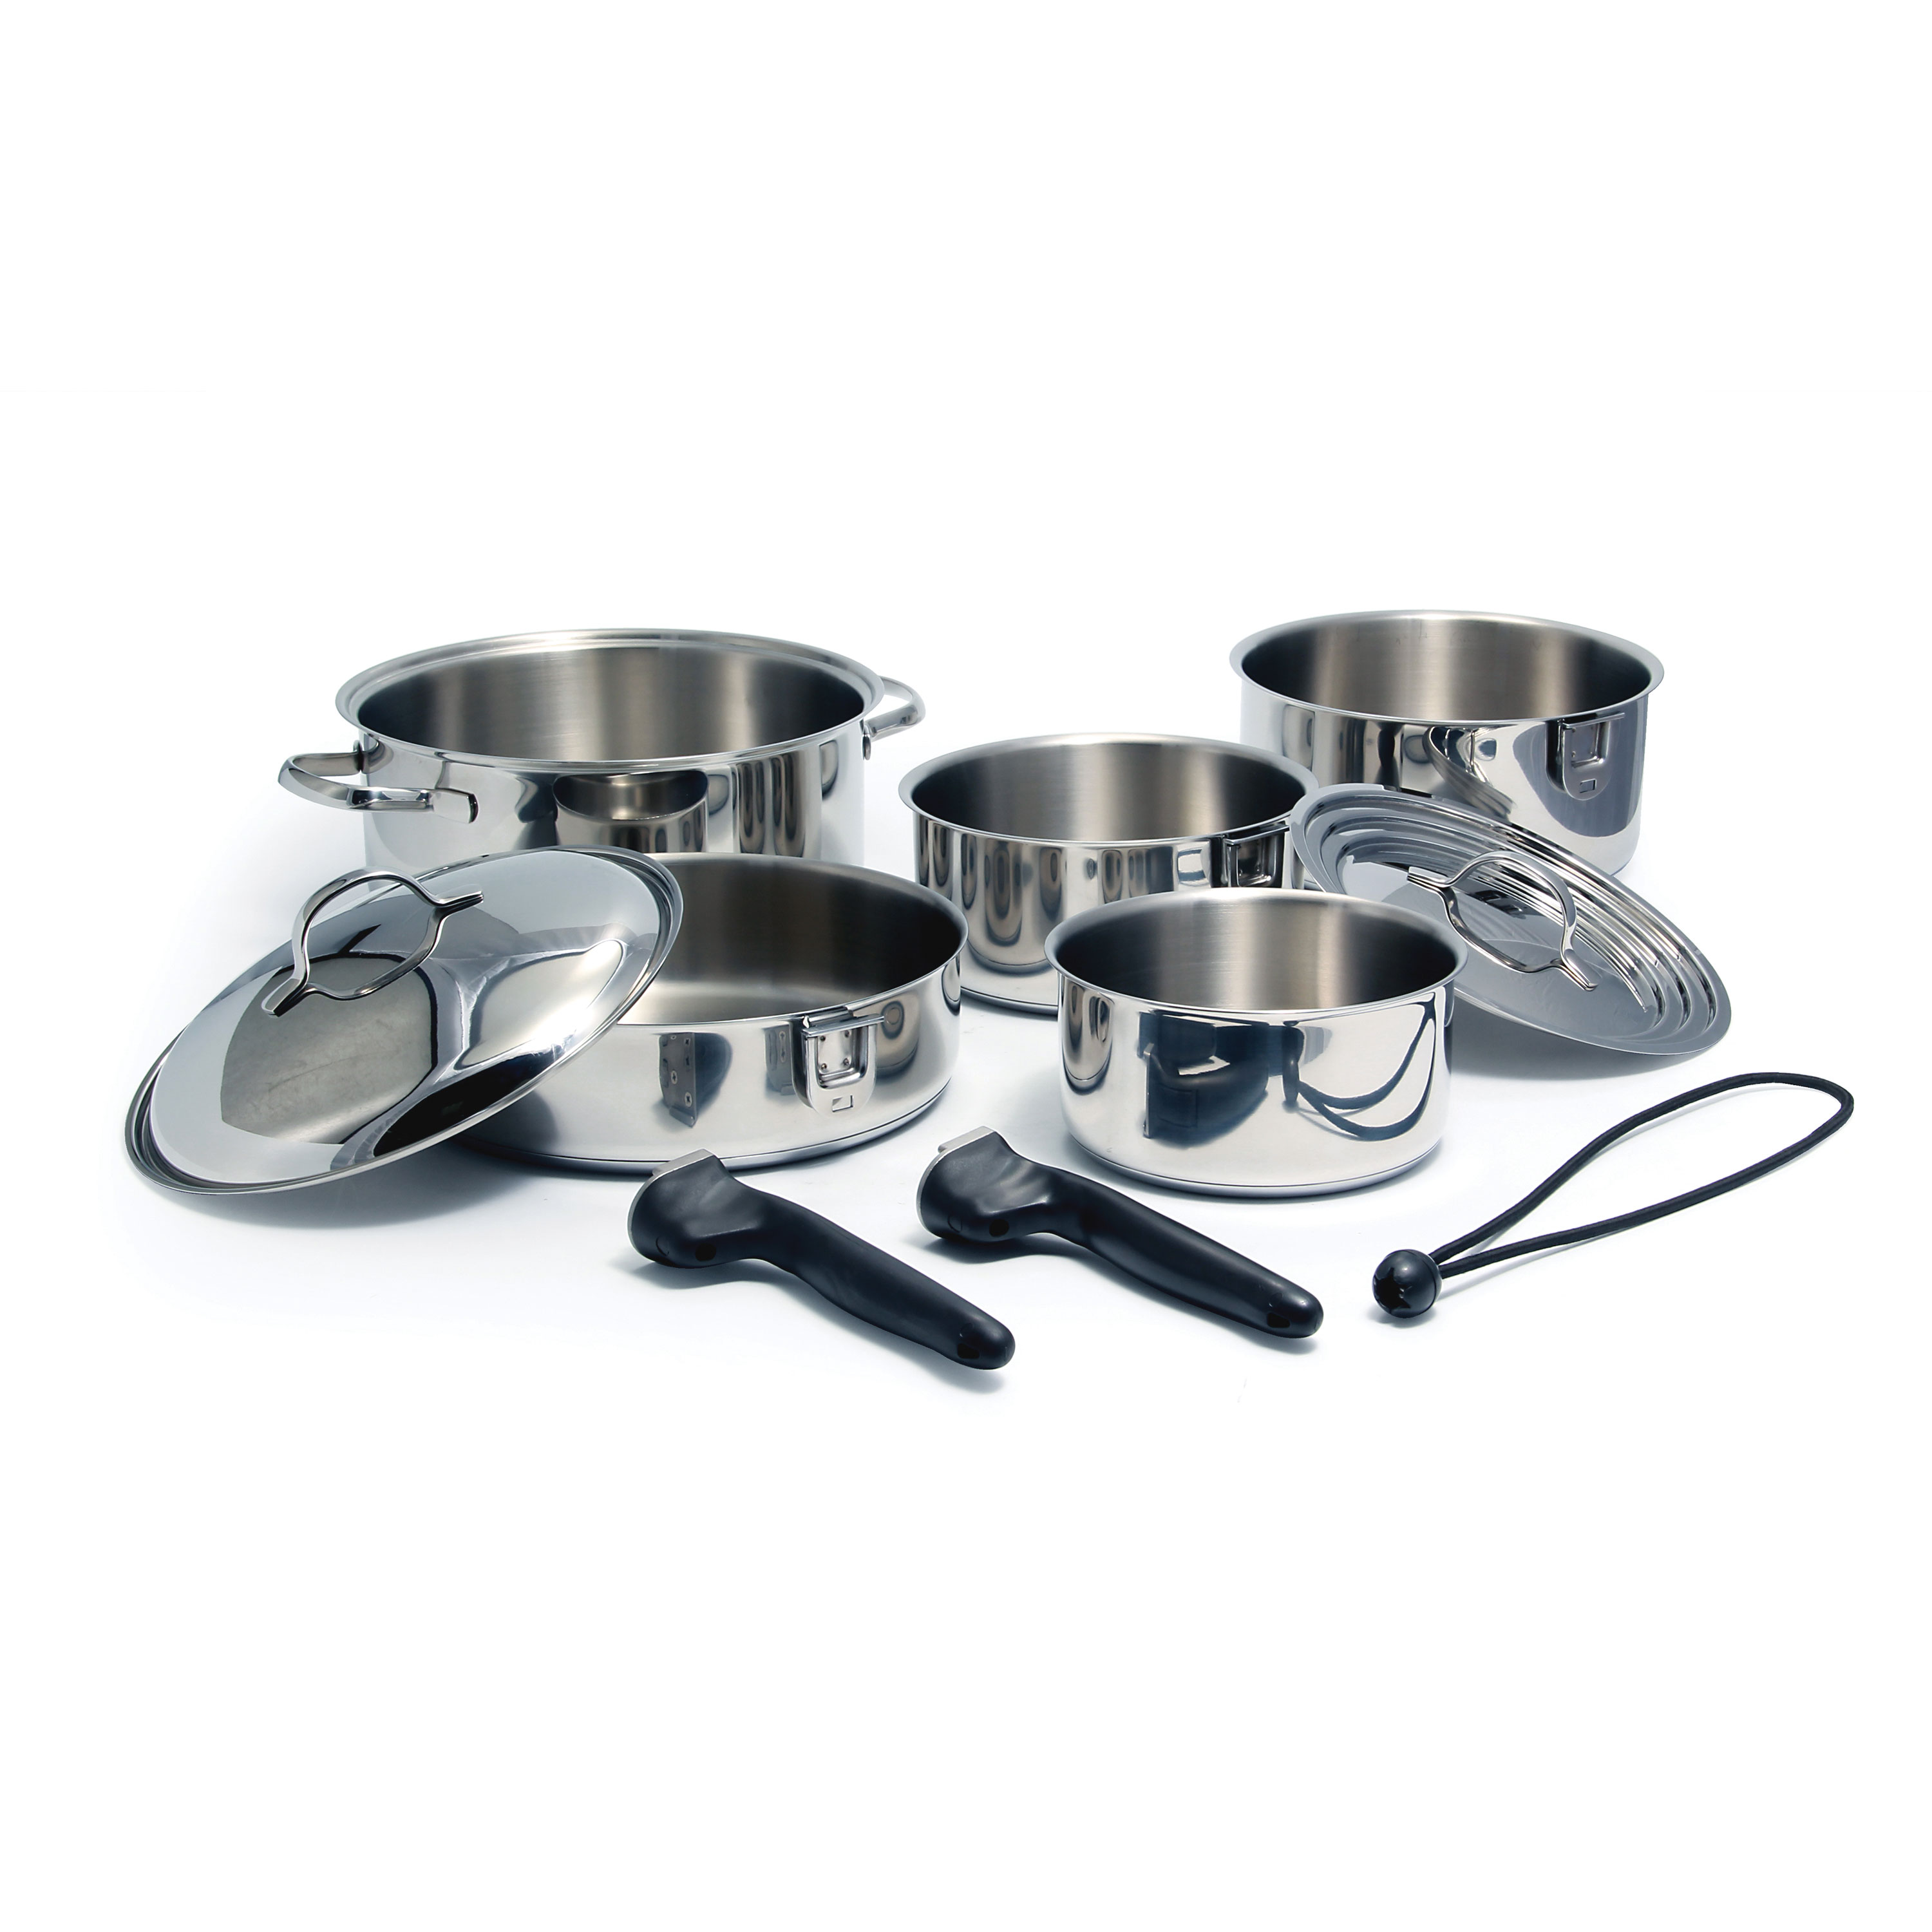 Camco Mfg 43921 Cookware 10 Pc Set Nesting Stainless Steel